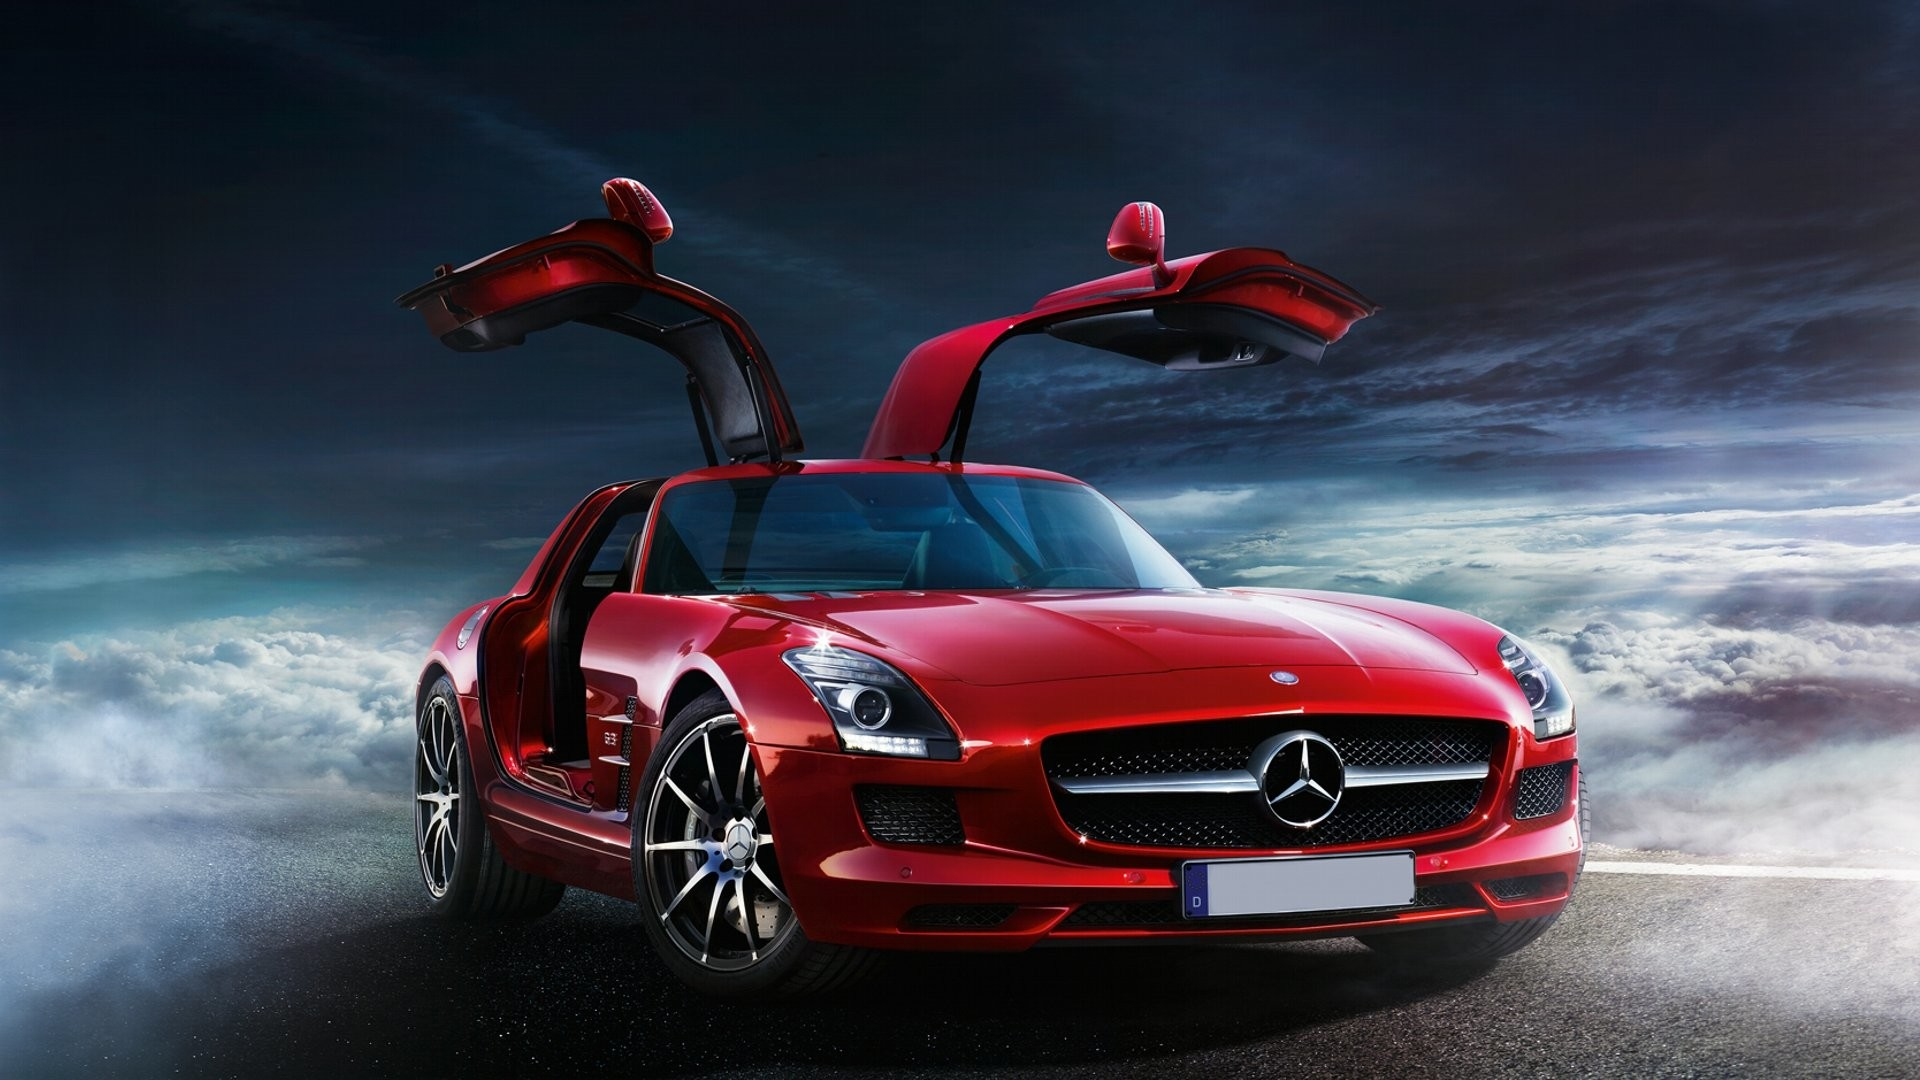 1920x1080 Red MercedesBenz SLS AMG HD desktop wallpaper High Definition 1920×1080